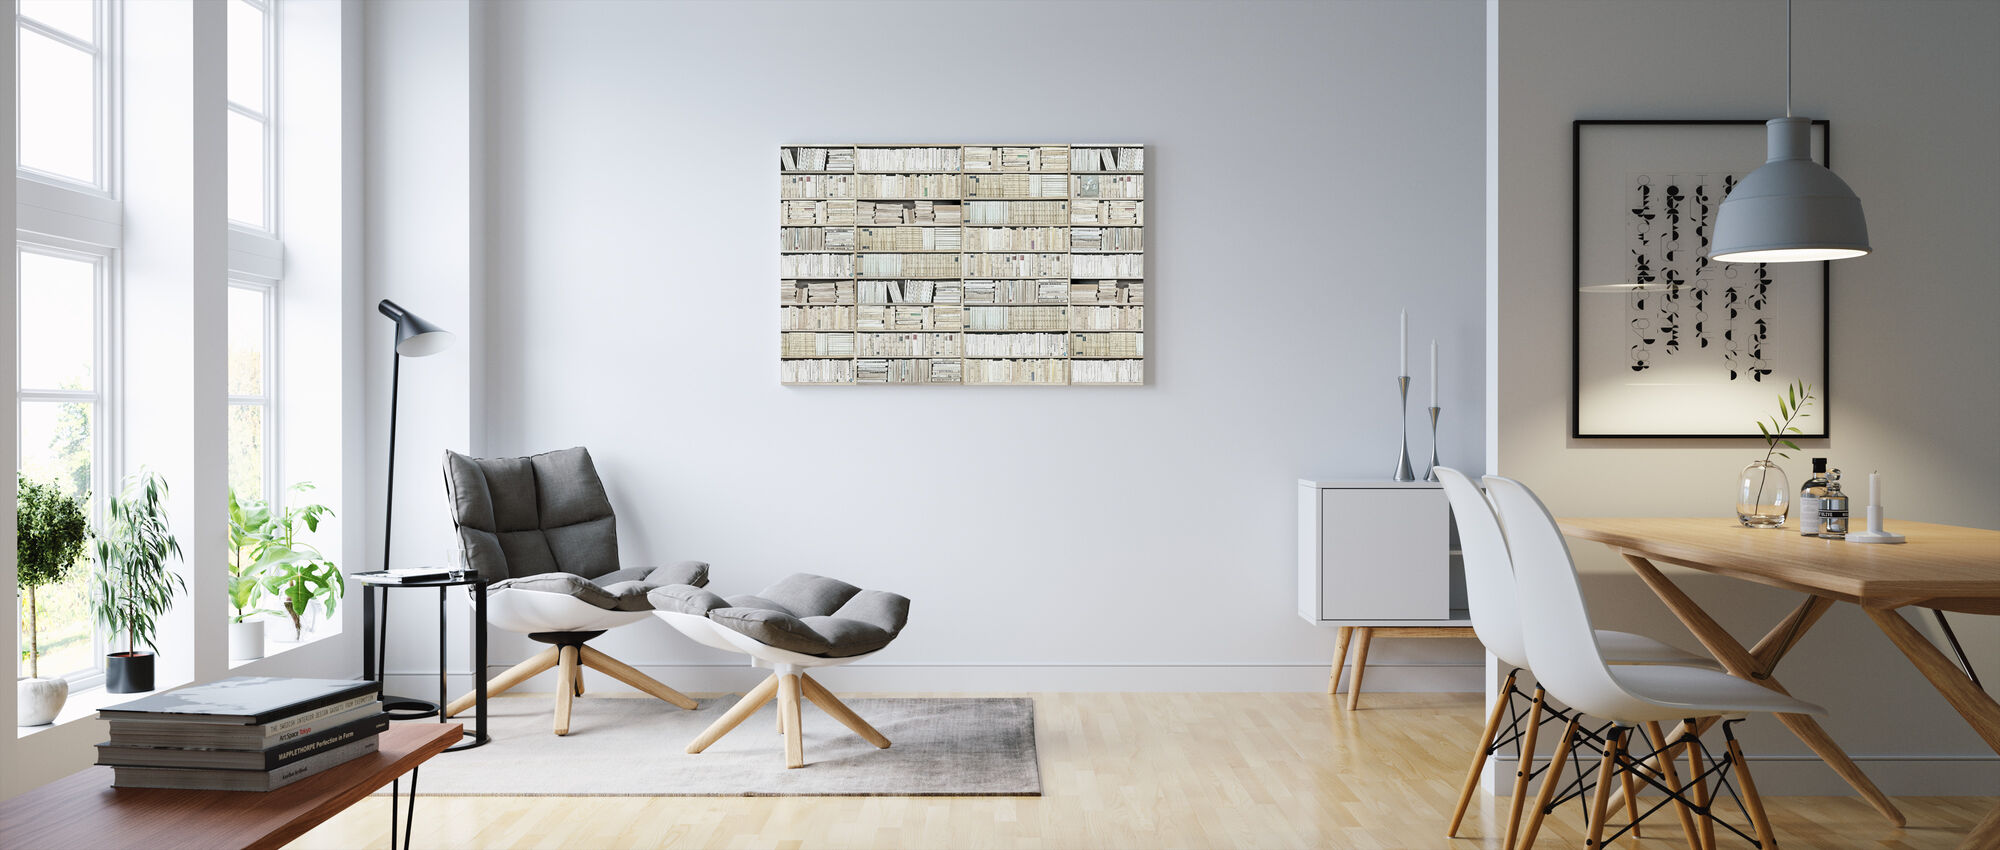 Bookshelf - White - Long - Canvas print - Living Room